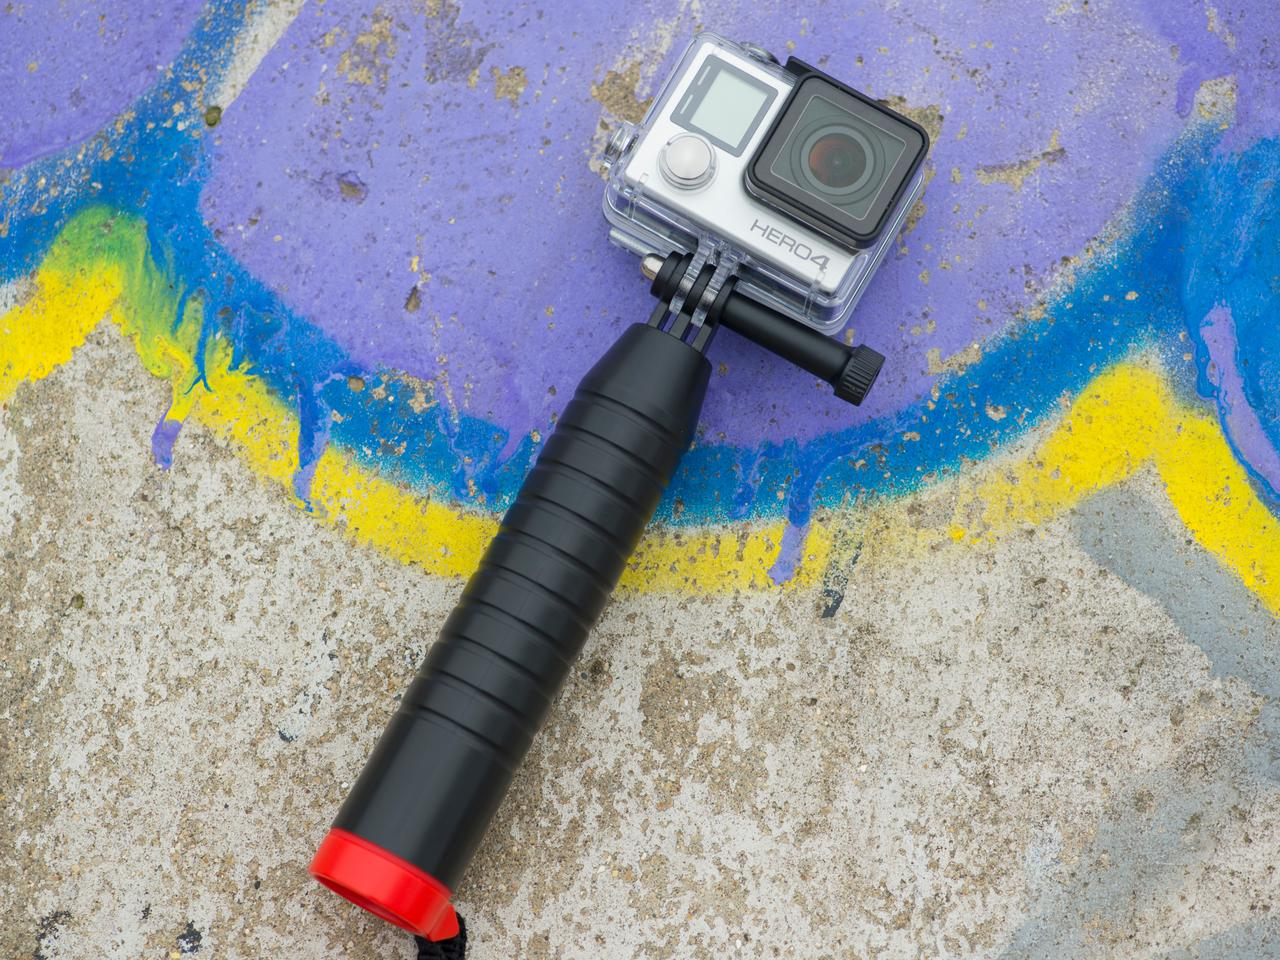 The Joby Action Grip doesn't have to be used in the water (Photo: Simon Crisp/Gizmag.com)